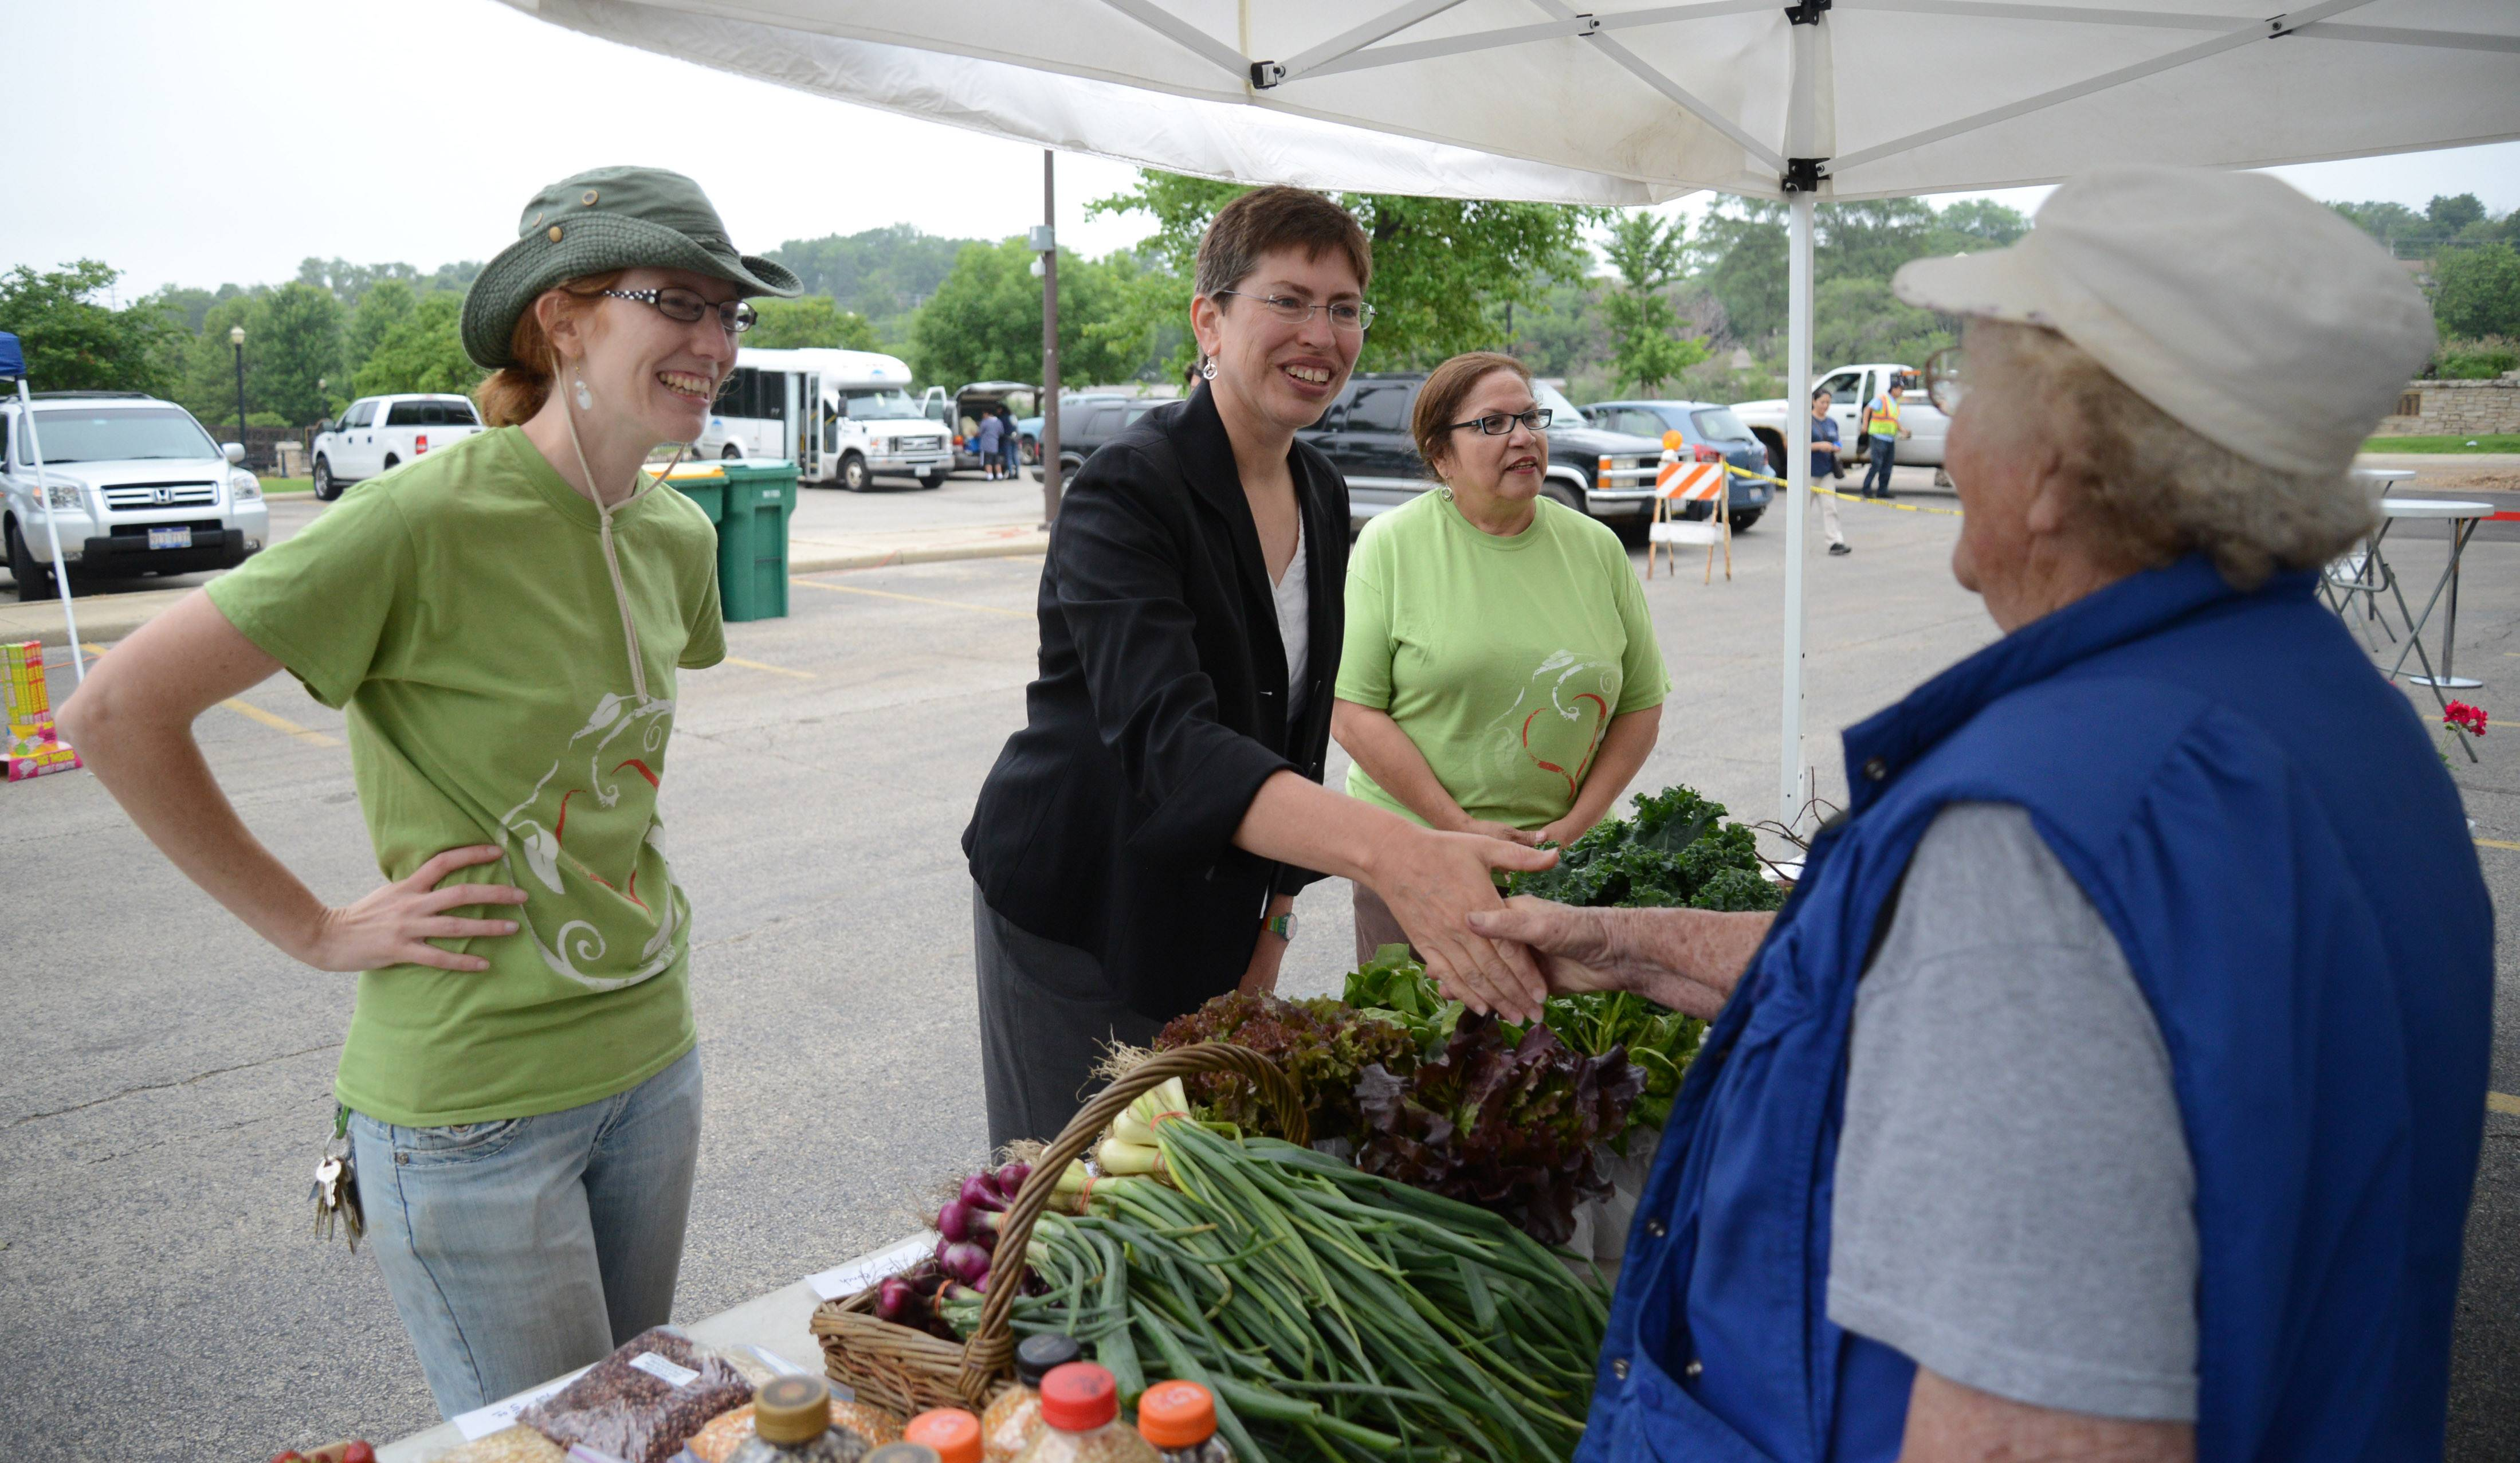 Lt. Gov. Sheila Simon, center, meets Millie Winkelmann of Maple Park and Stojan's Vegetables at the Downtown Elgin Harvest Market Thursday. Simon, escorted by market manager Jennifer Benson, left, chatted with vendors about advocacy for locally grown food and urging more markets to accept Link cards so all residents can access homegrown products.